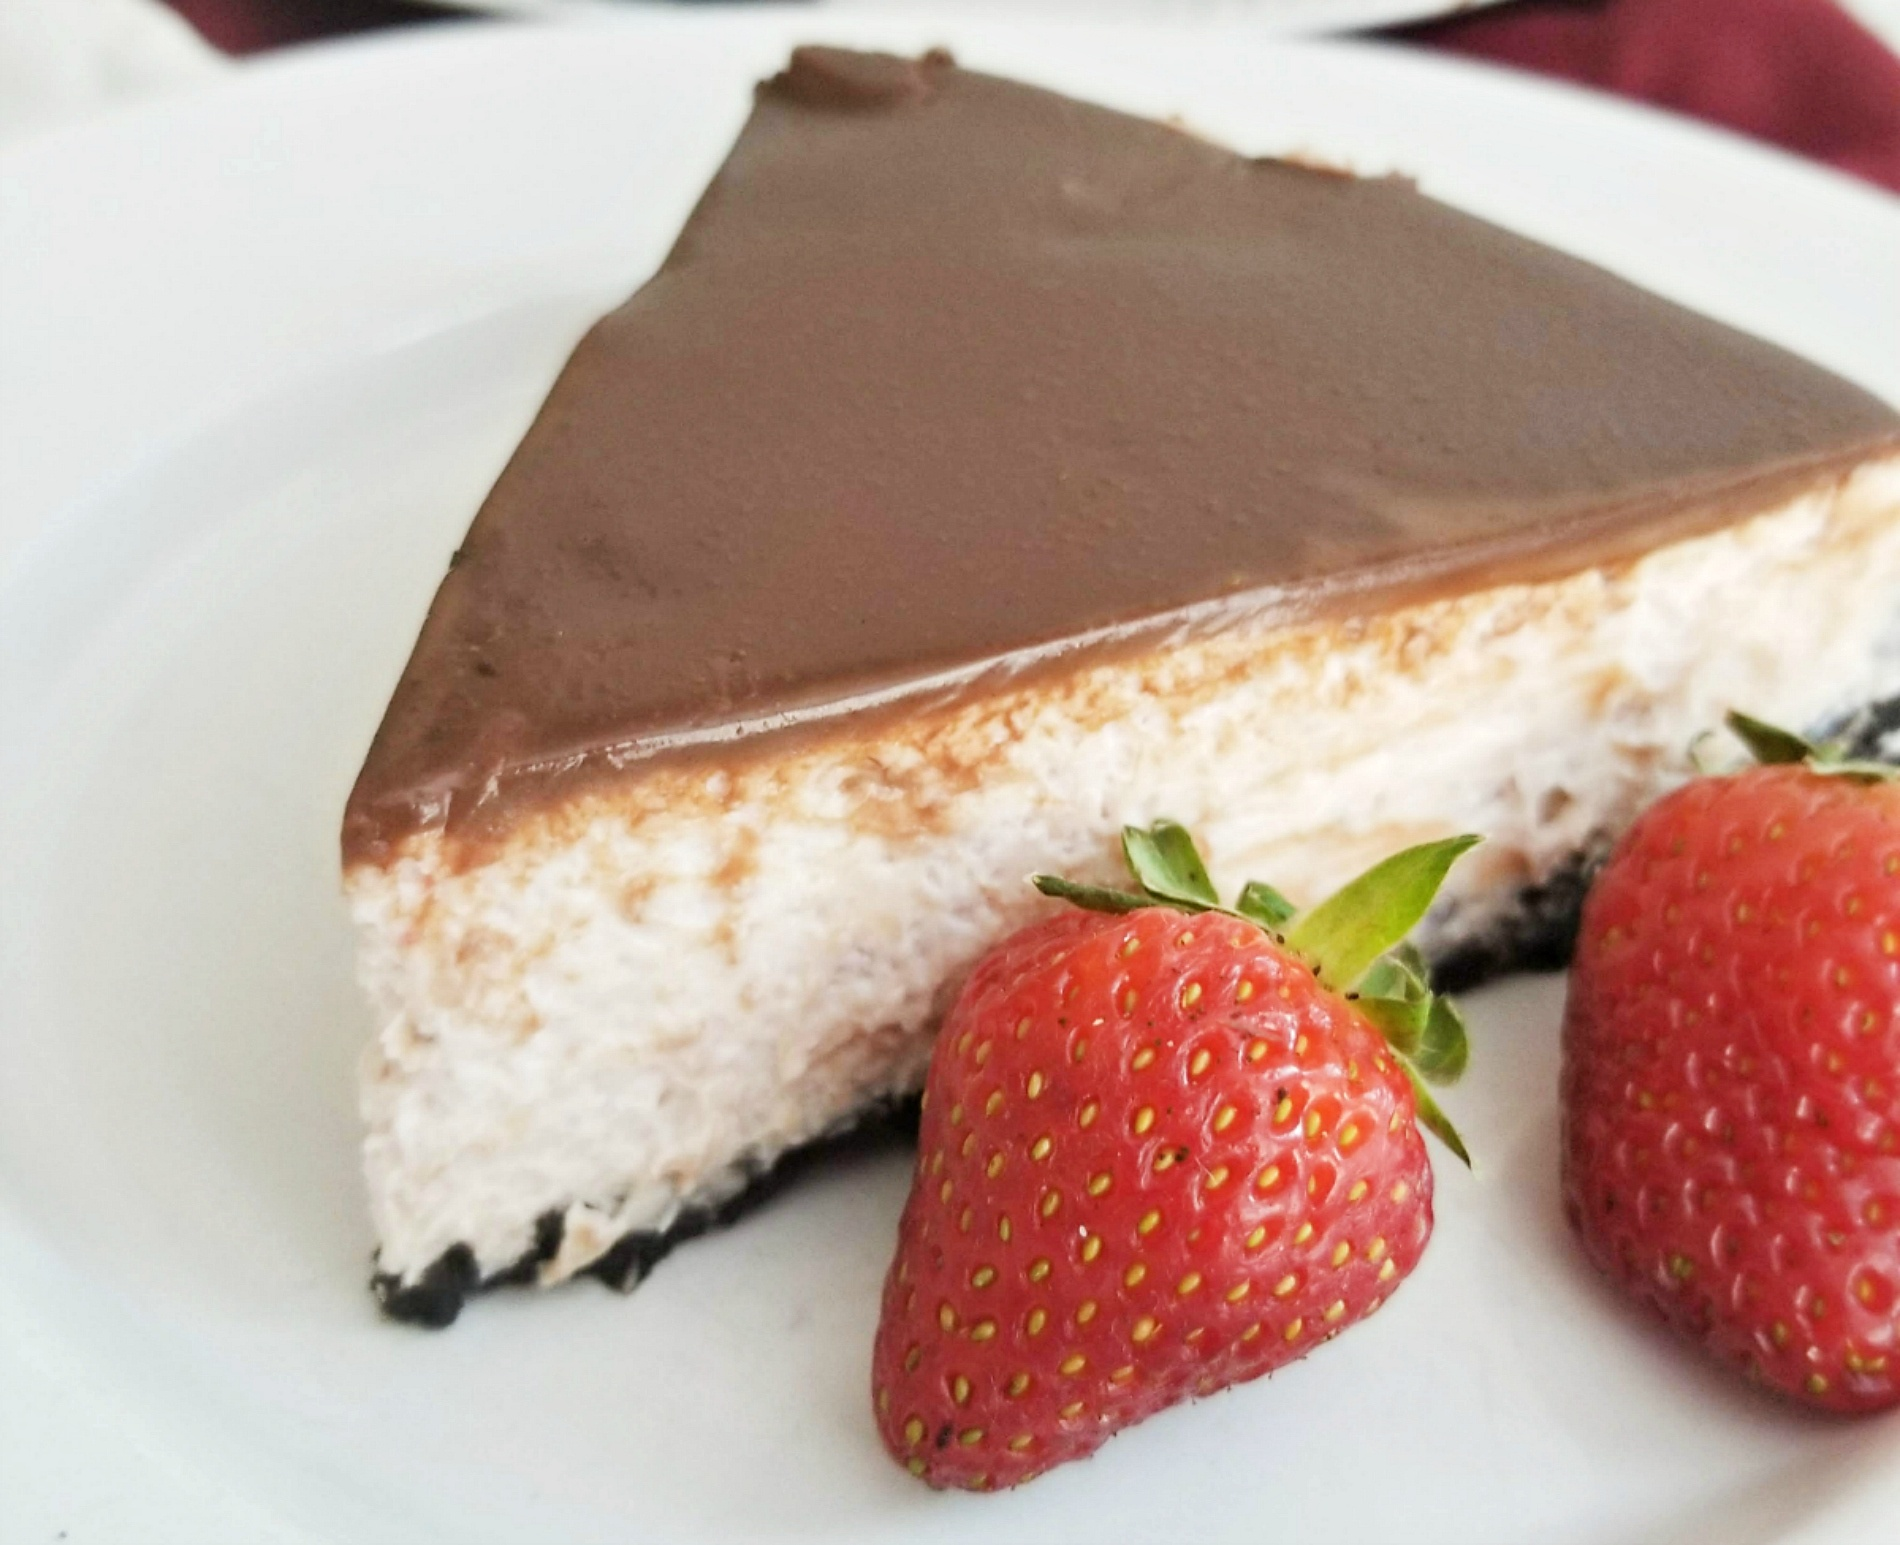 Strawberry Cheesecake Covered in Chocolate